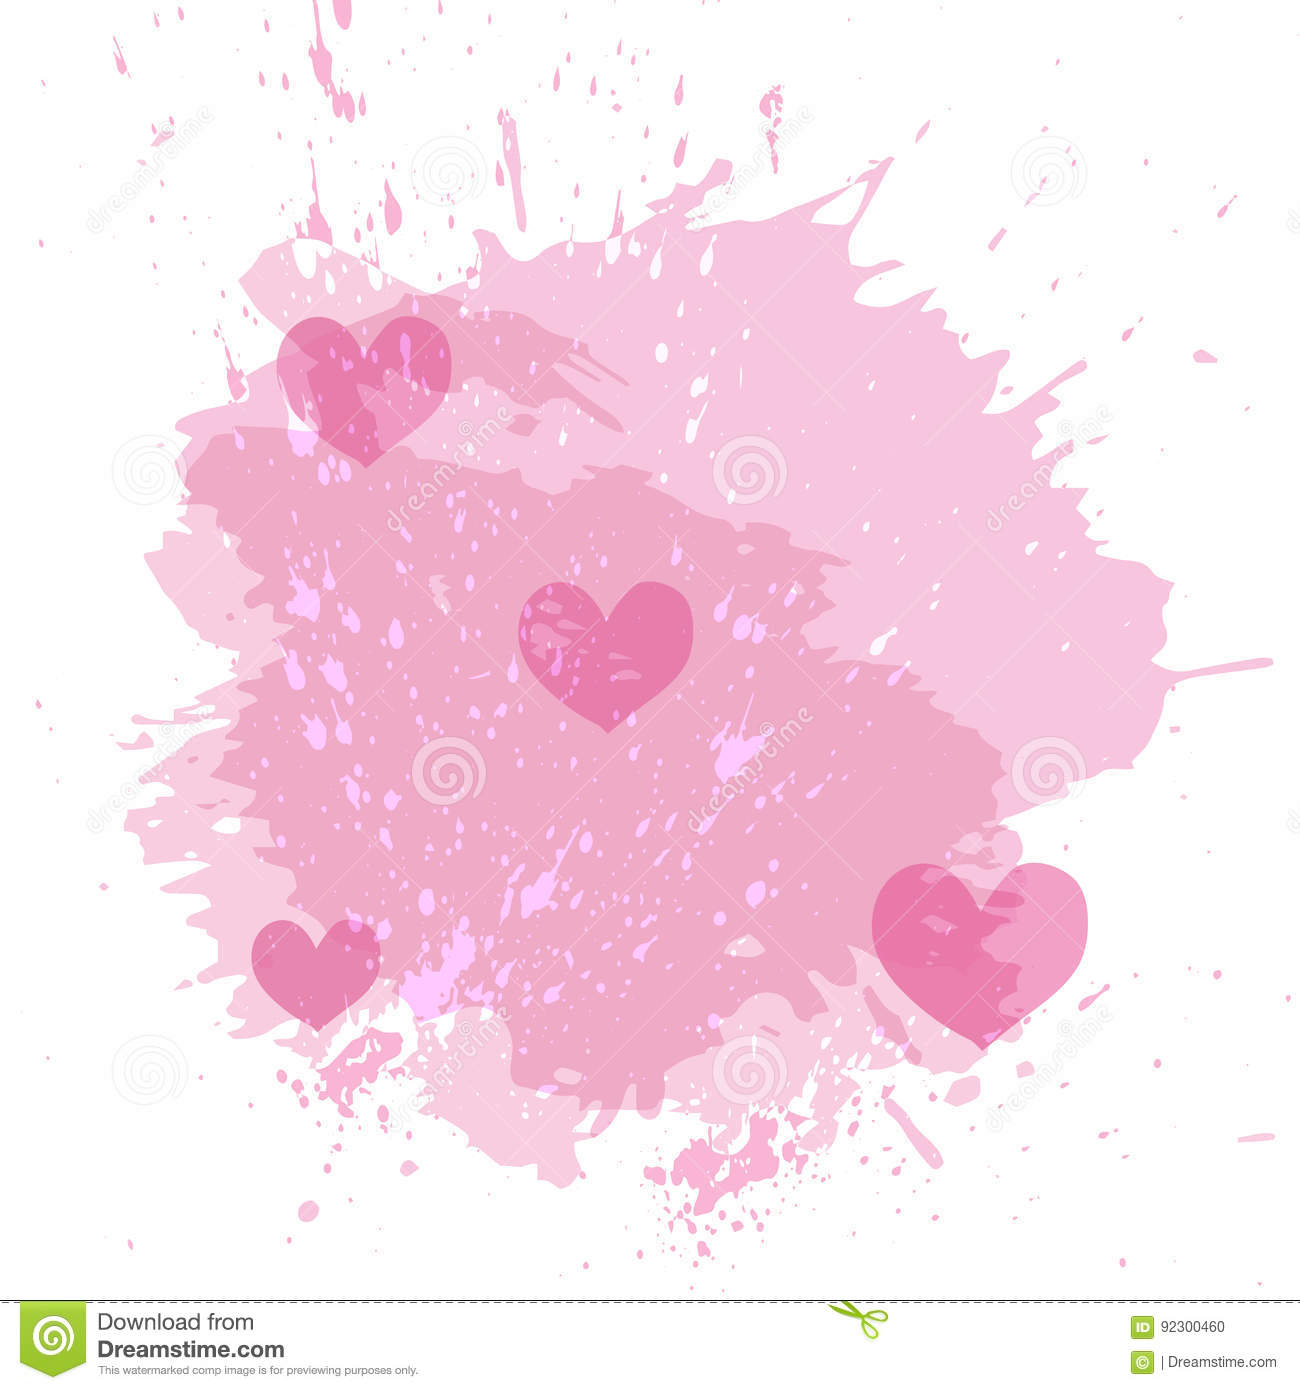 Abstract watercolor spot background with pink hearts splash texture background isolated on white